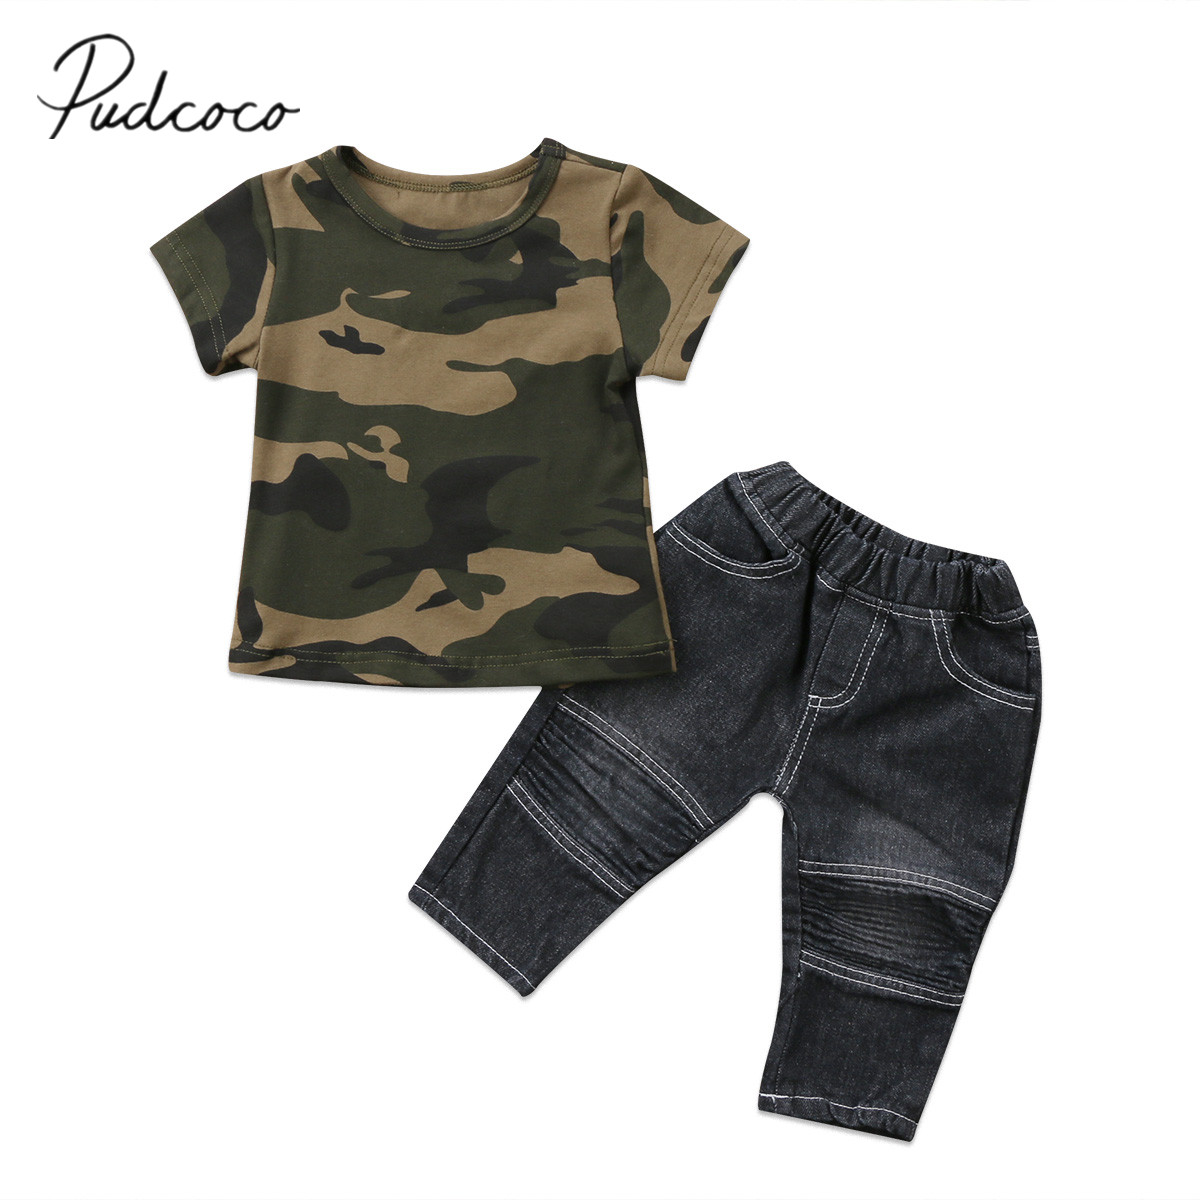 2017 Brand New Lovely Toddler Infant Child Kids Baby Boys Camo T-Shirt Tops Denim Pants Cotton 2Pcs Outfits Clothes Set 6M-5T 2017 new fashion brand boys t shirt kids tops designer toddler baby boys t shirts cotton short sleeve tee shirt kids t shirt